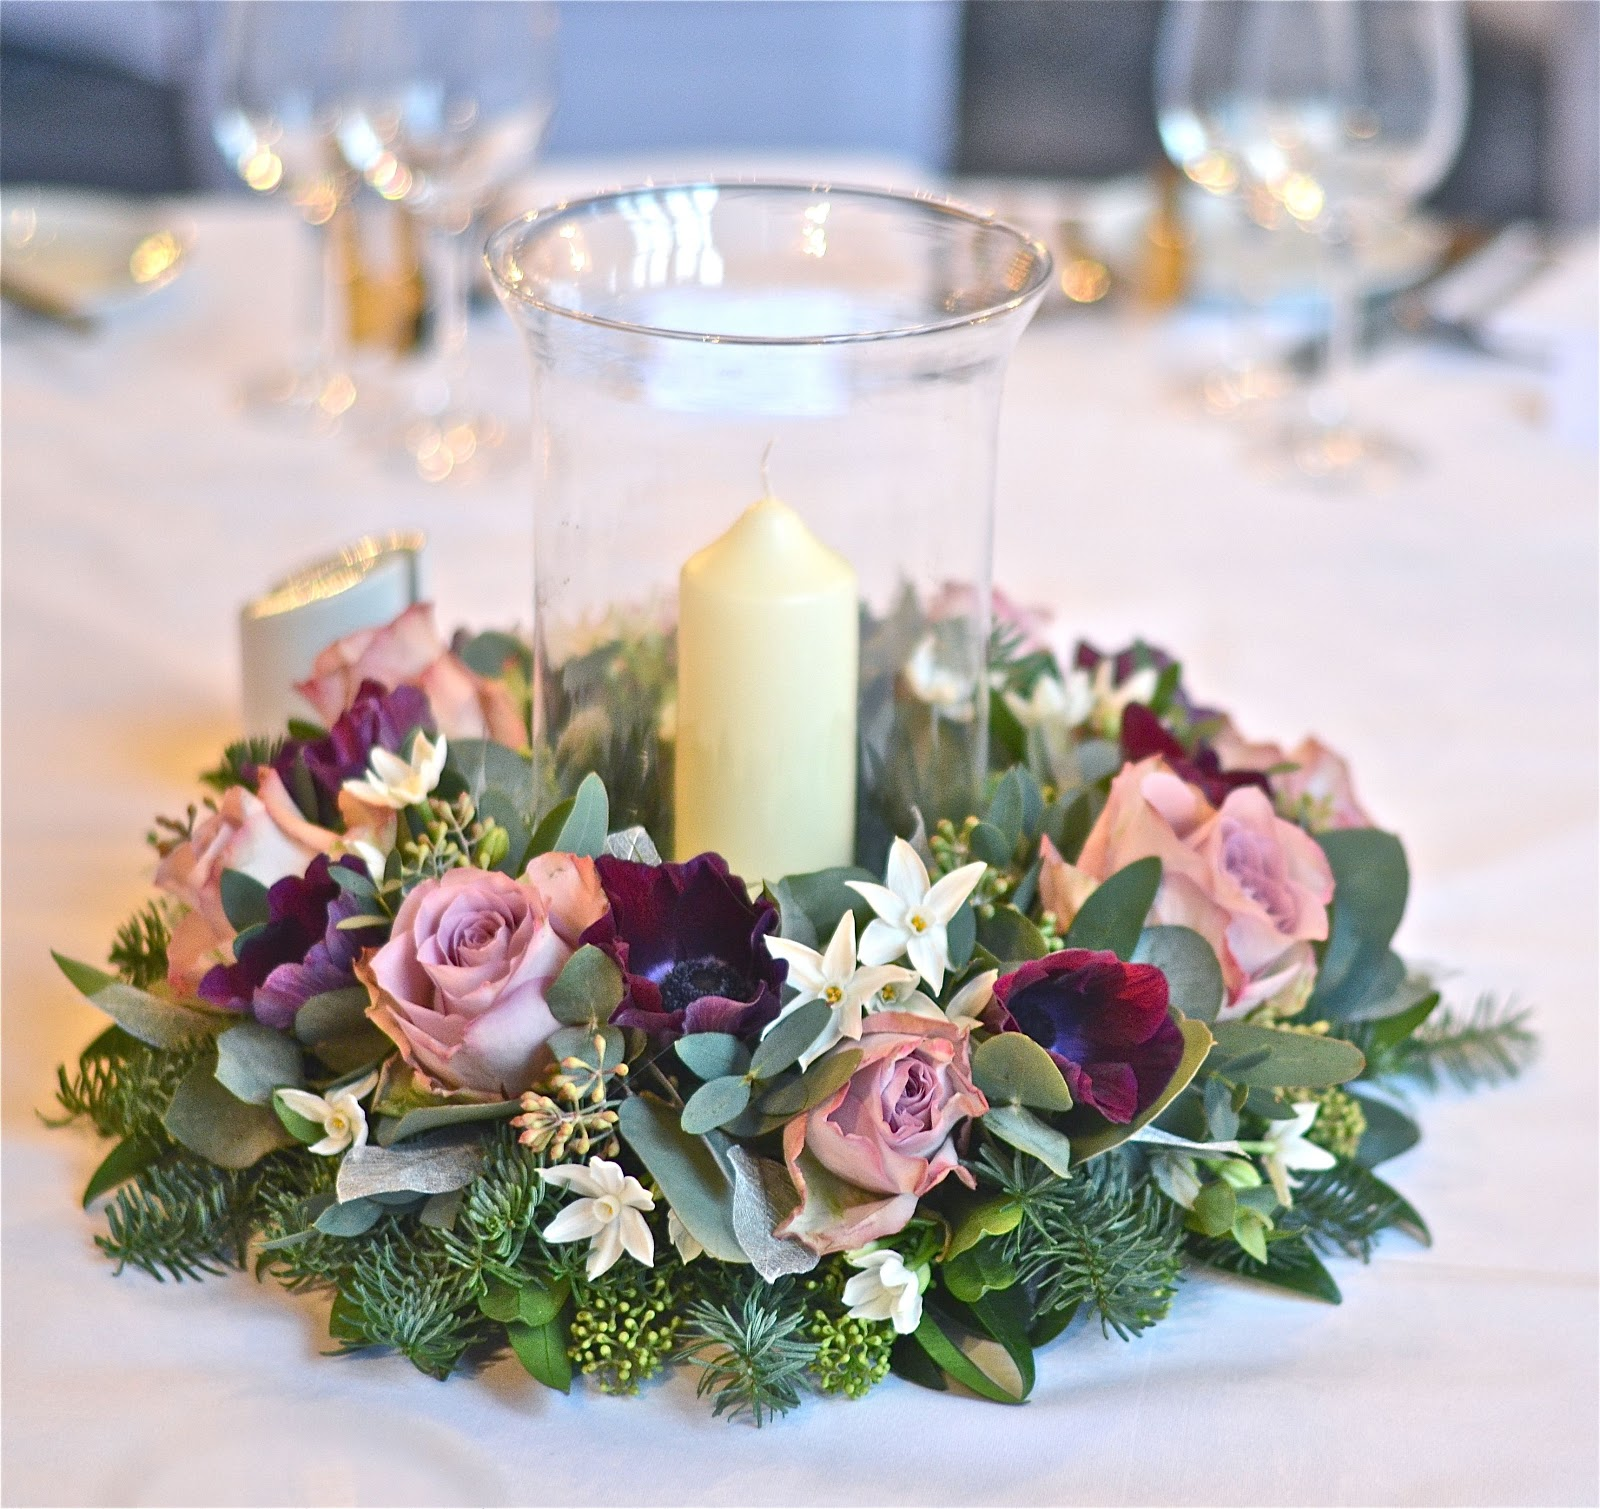 Flowers For Wedding Table Centerpieces: Wedding Flowers Blog: Lacey's Plum And Silver Winter